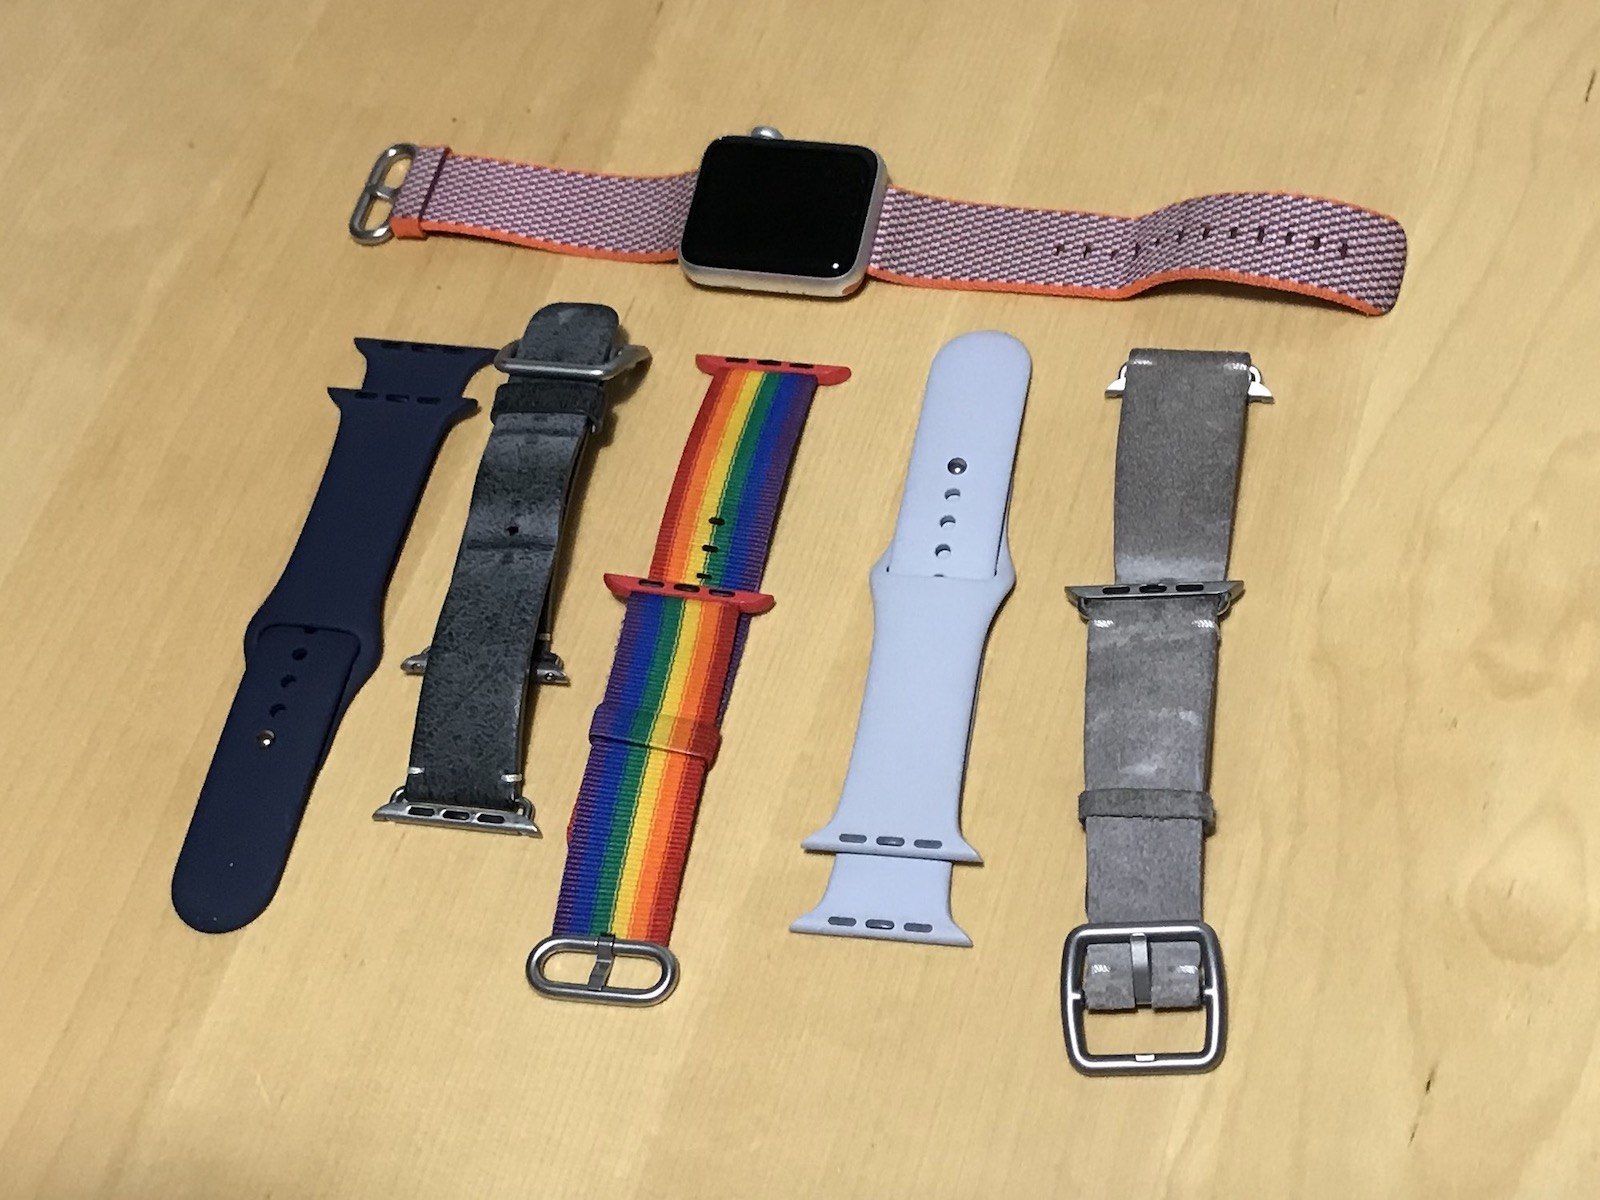 Watch bands, perhaps too many …